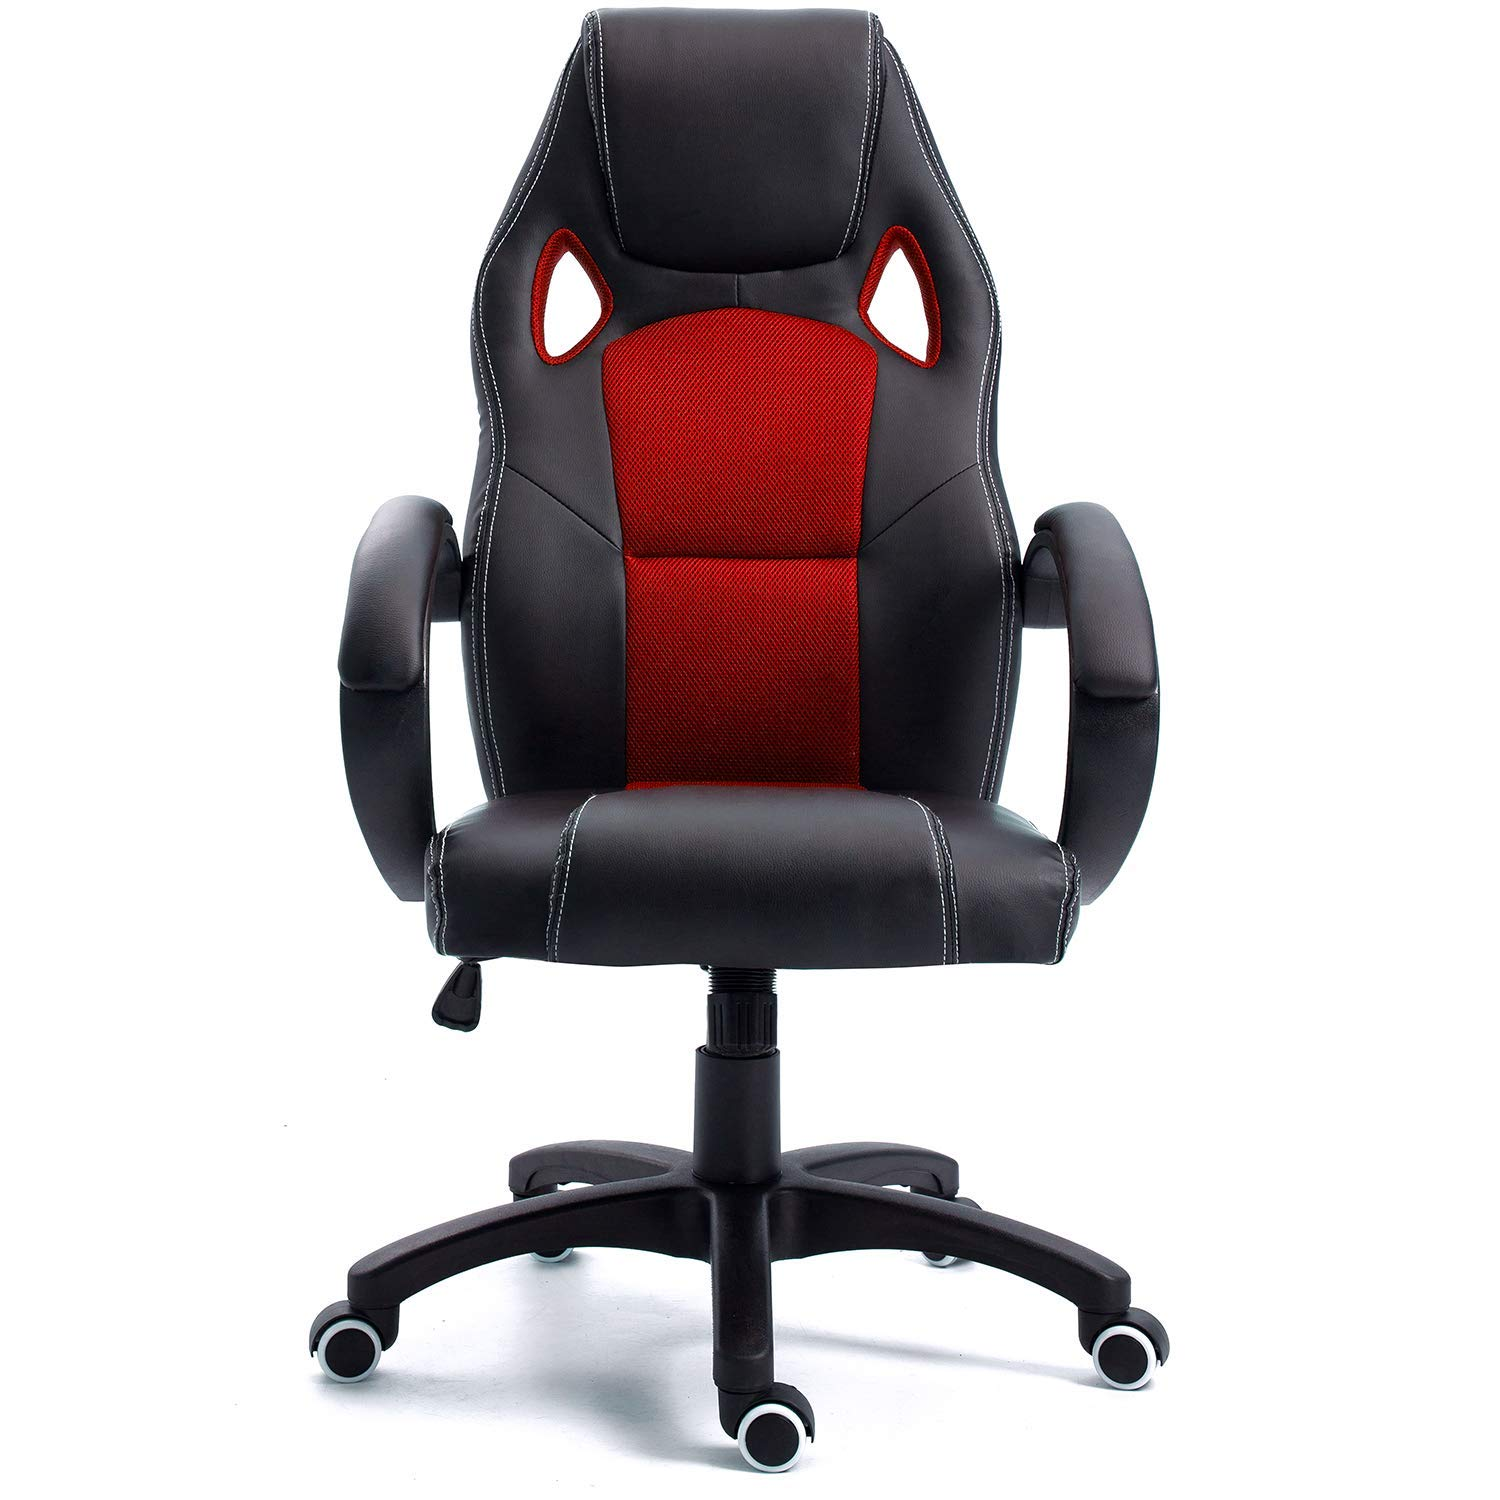 Samincom Office Desk Chair with mesh Back, Swivel Gaming Chair, W49 x D49 x H109-120CM